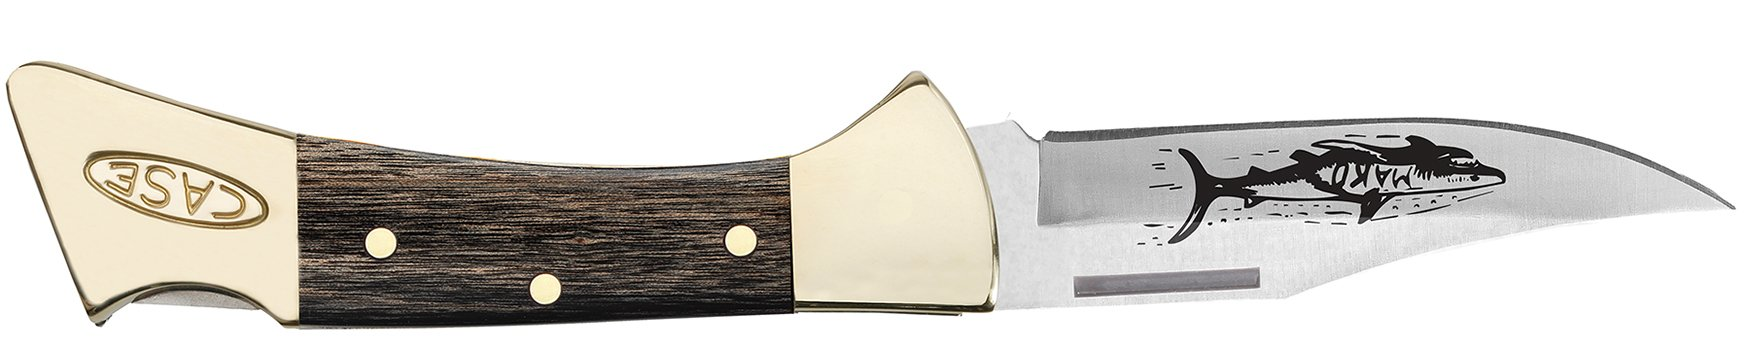 Staminawood Mako® with Leather Sheath